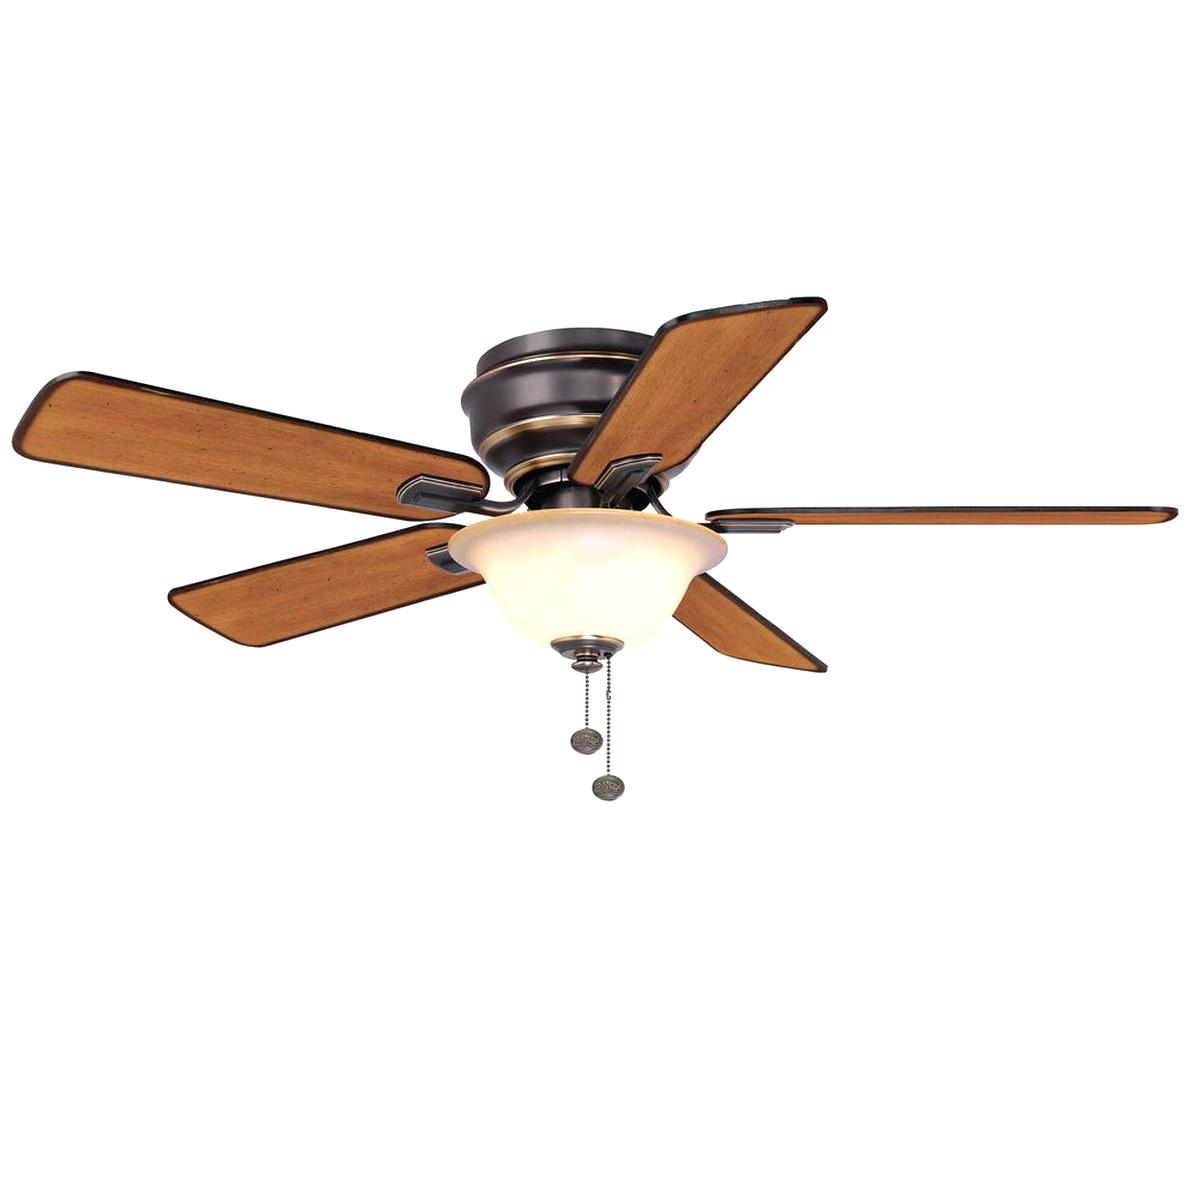 Hampton Bay Ceiling Fan For Sale Only 3 Left At 60